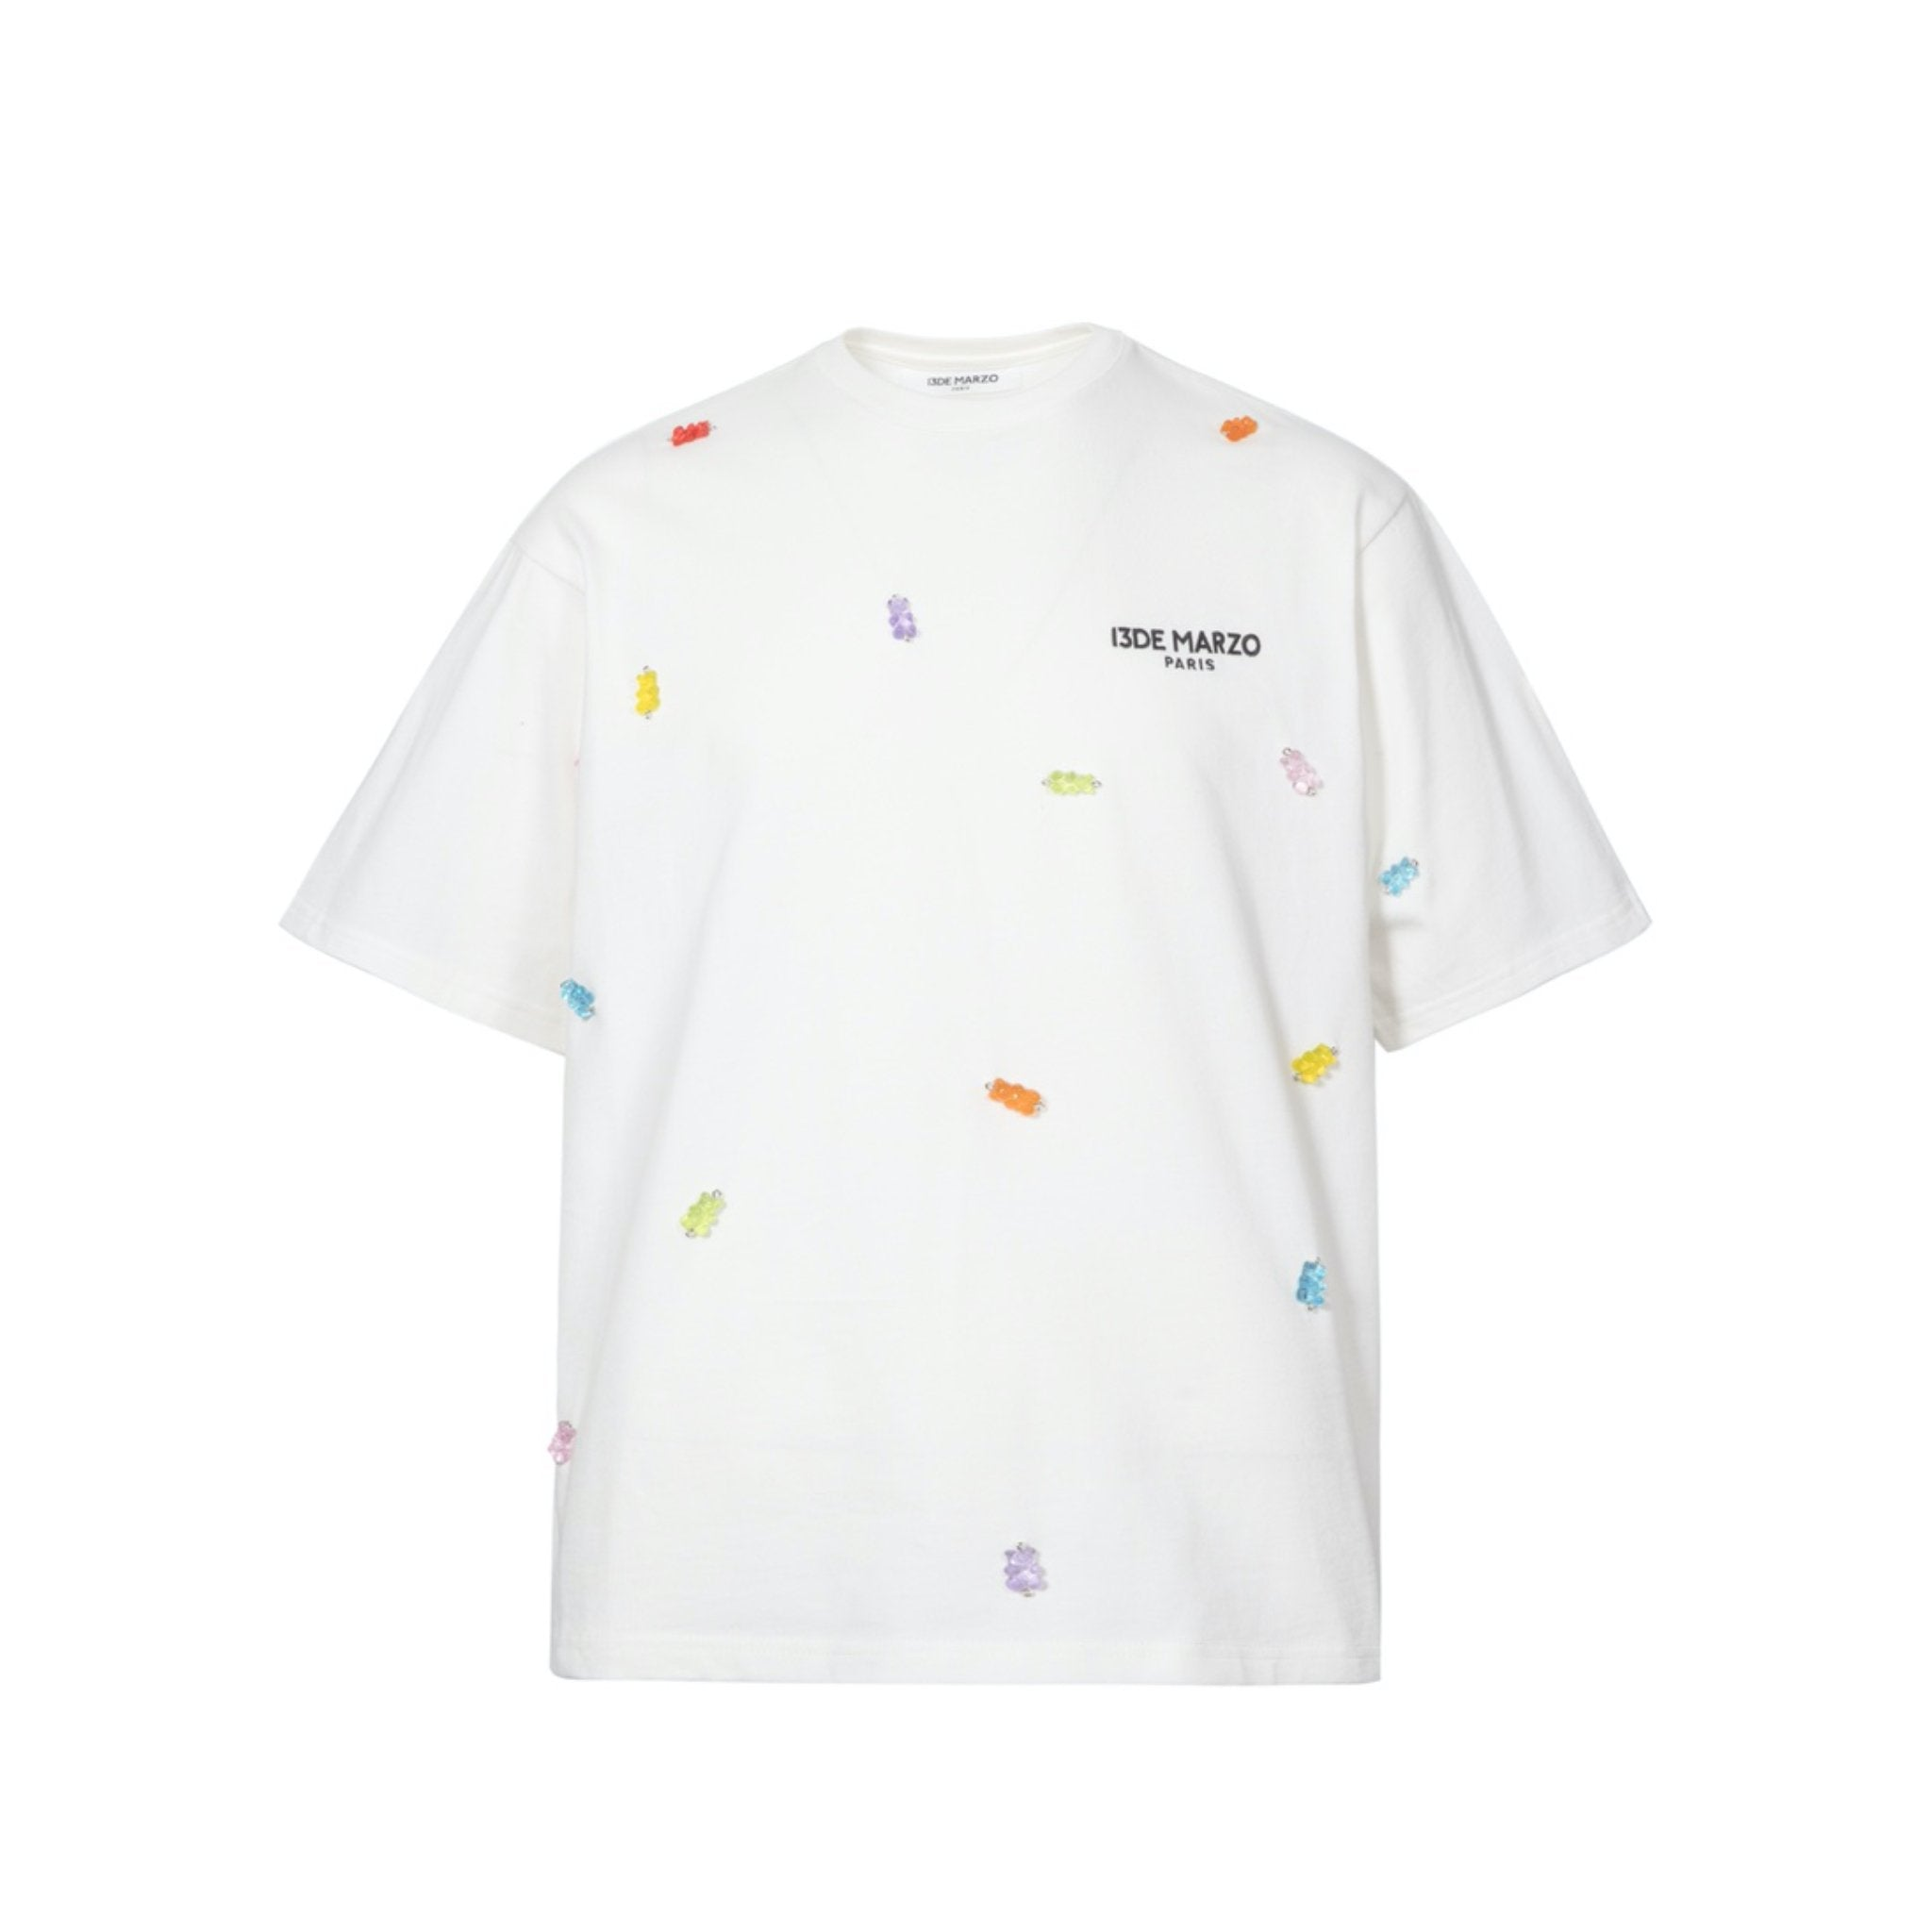 13 DE MARZO Gummy Bears Cover Tee White | MADA IN CHINA